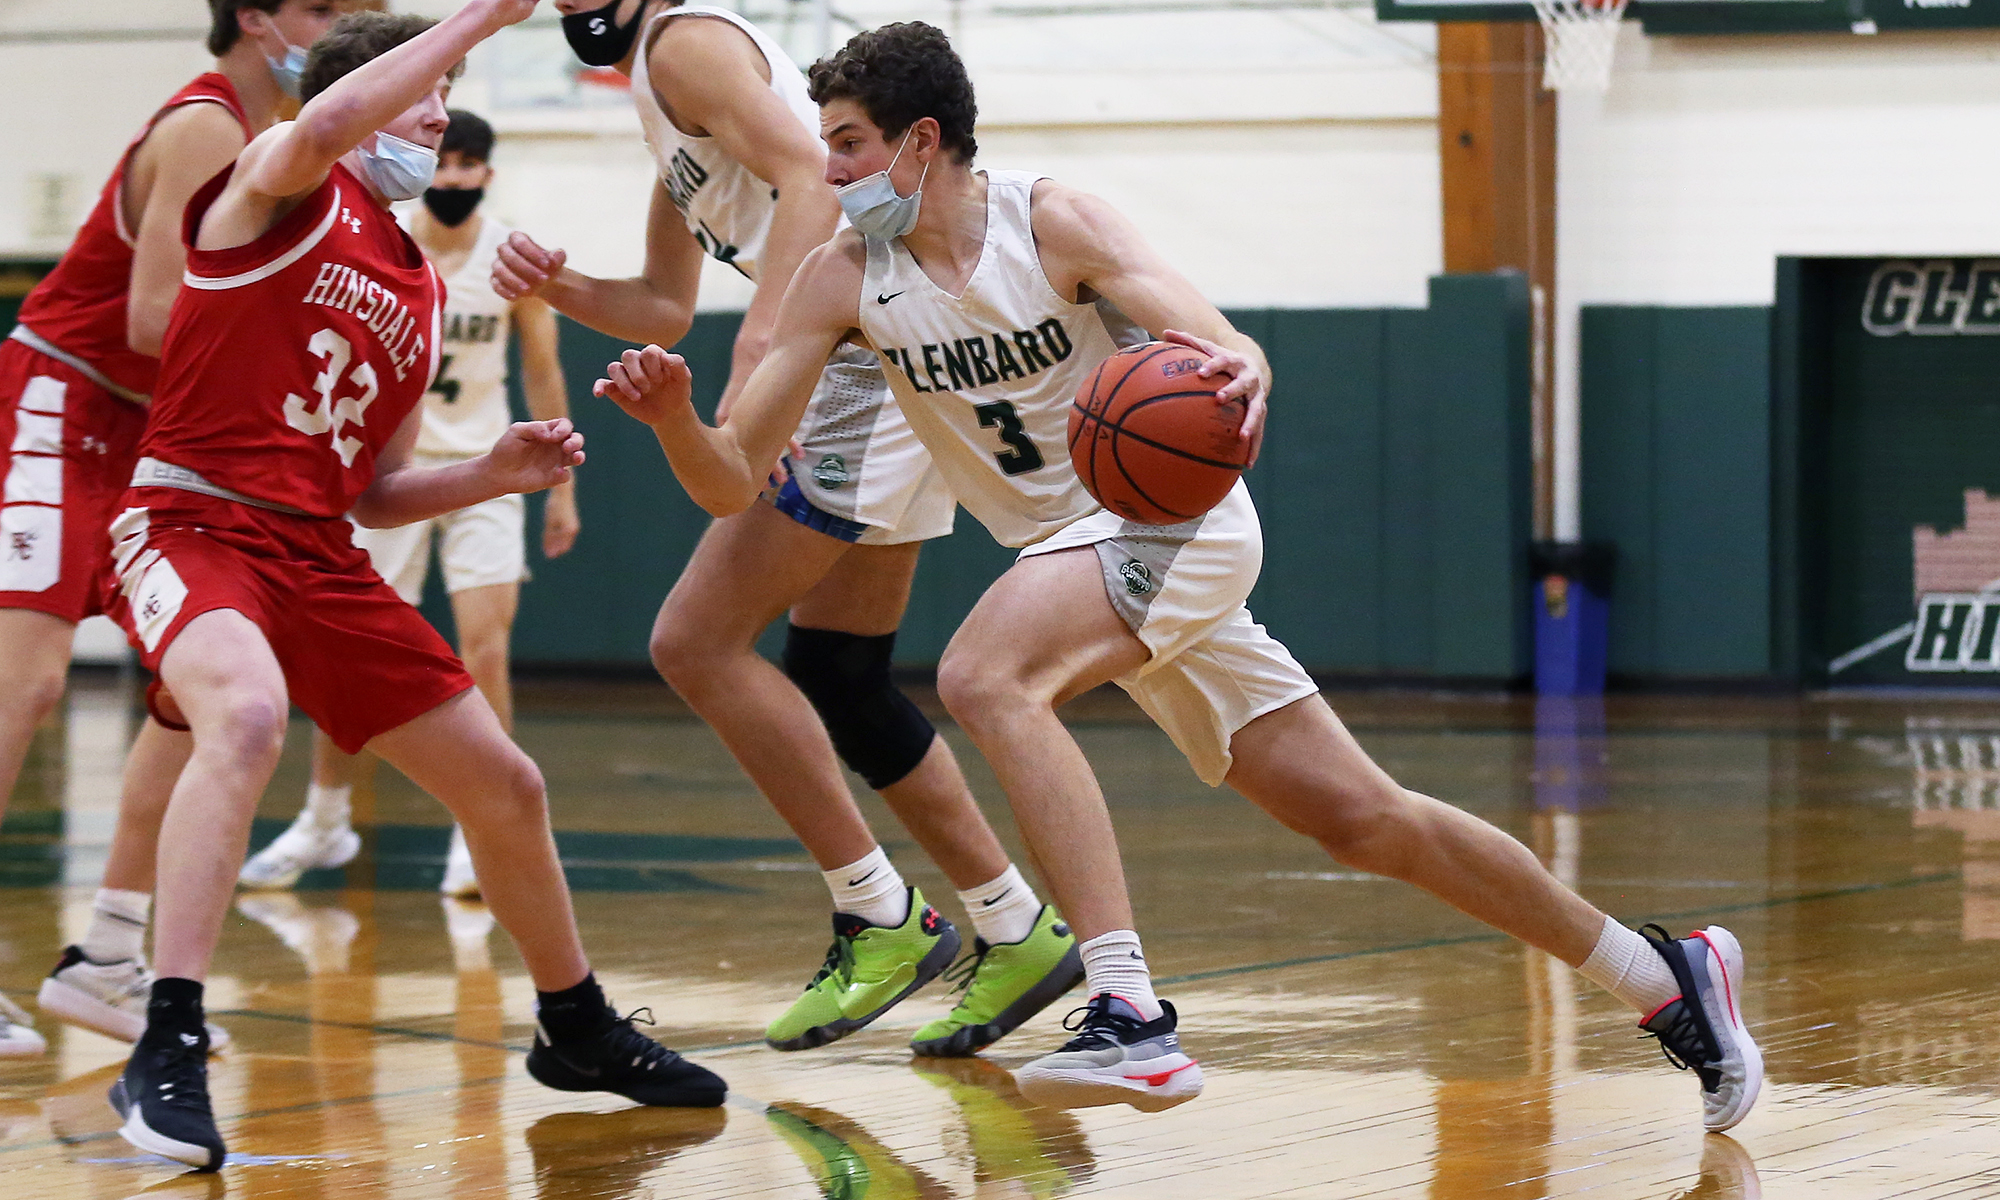 Glenbard West's Caden Pierce (3) pushes the tempo as Hinsdale Central's Jake Quast (32) defends.